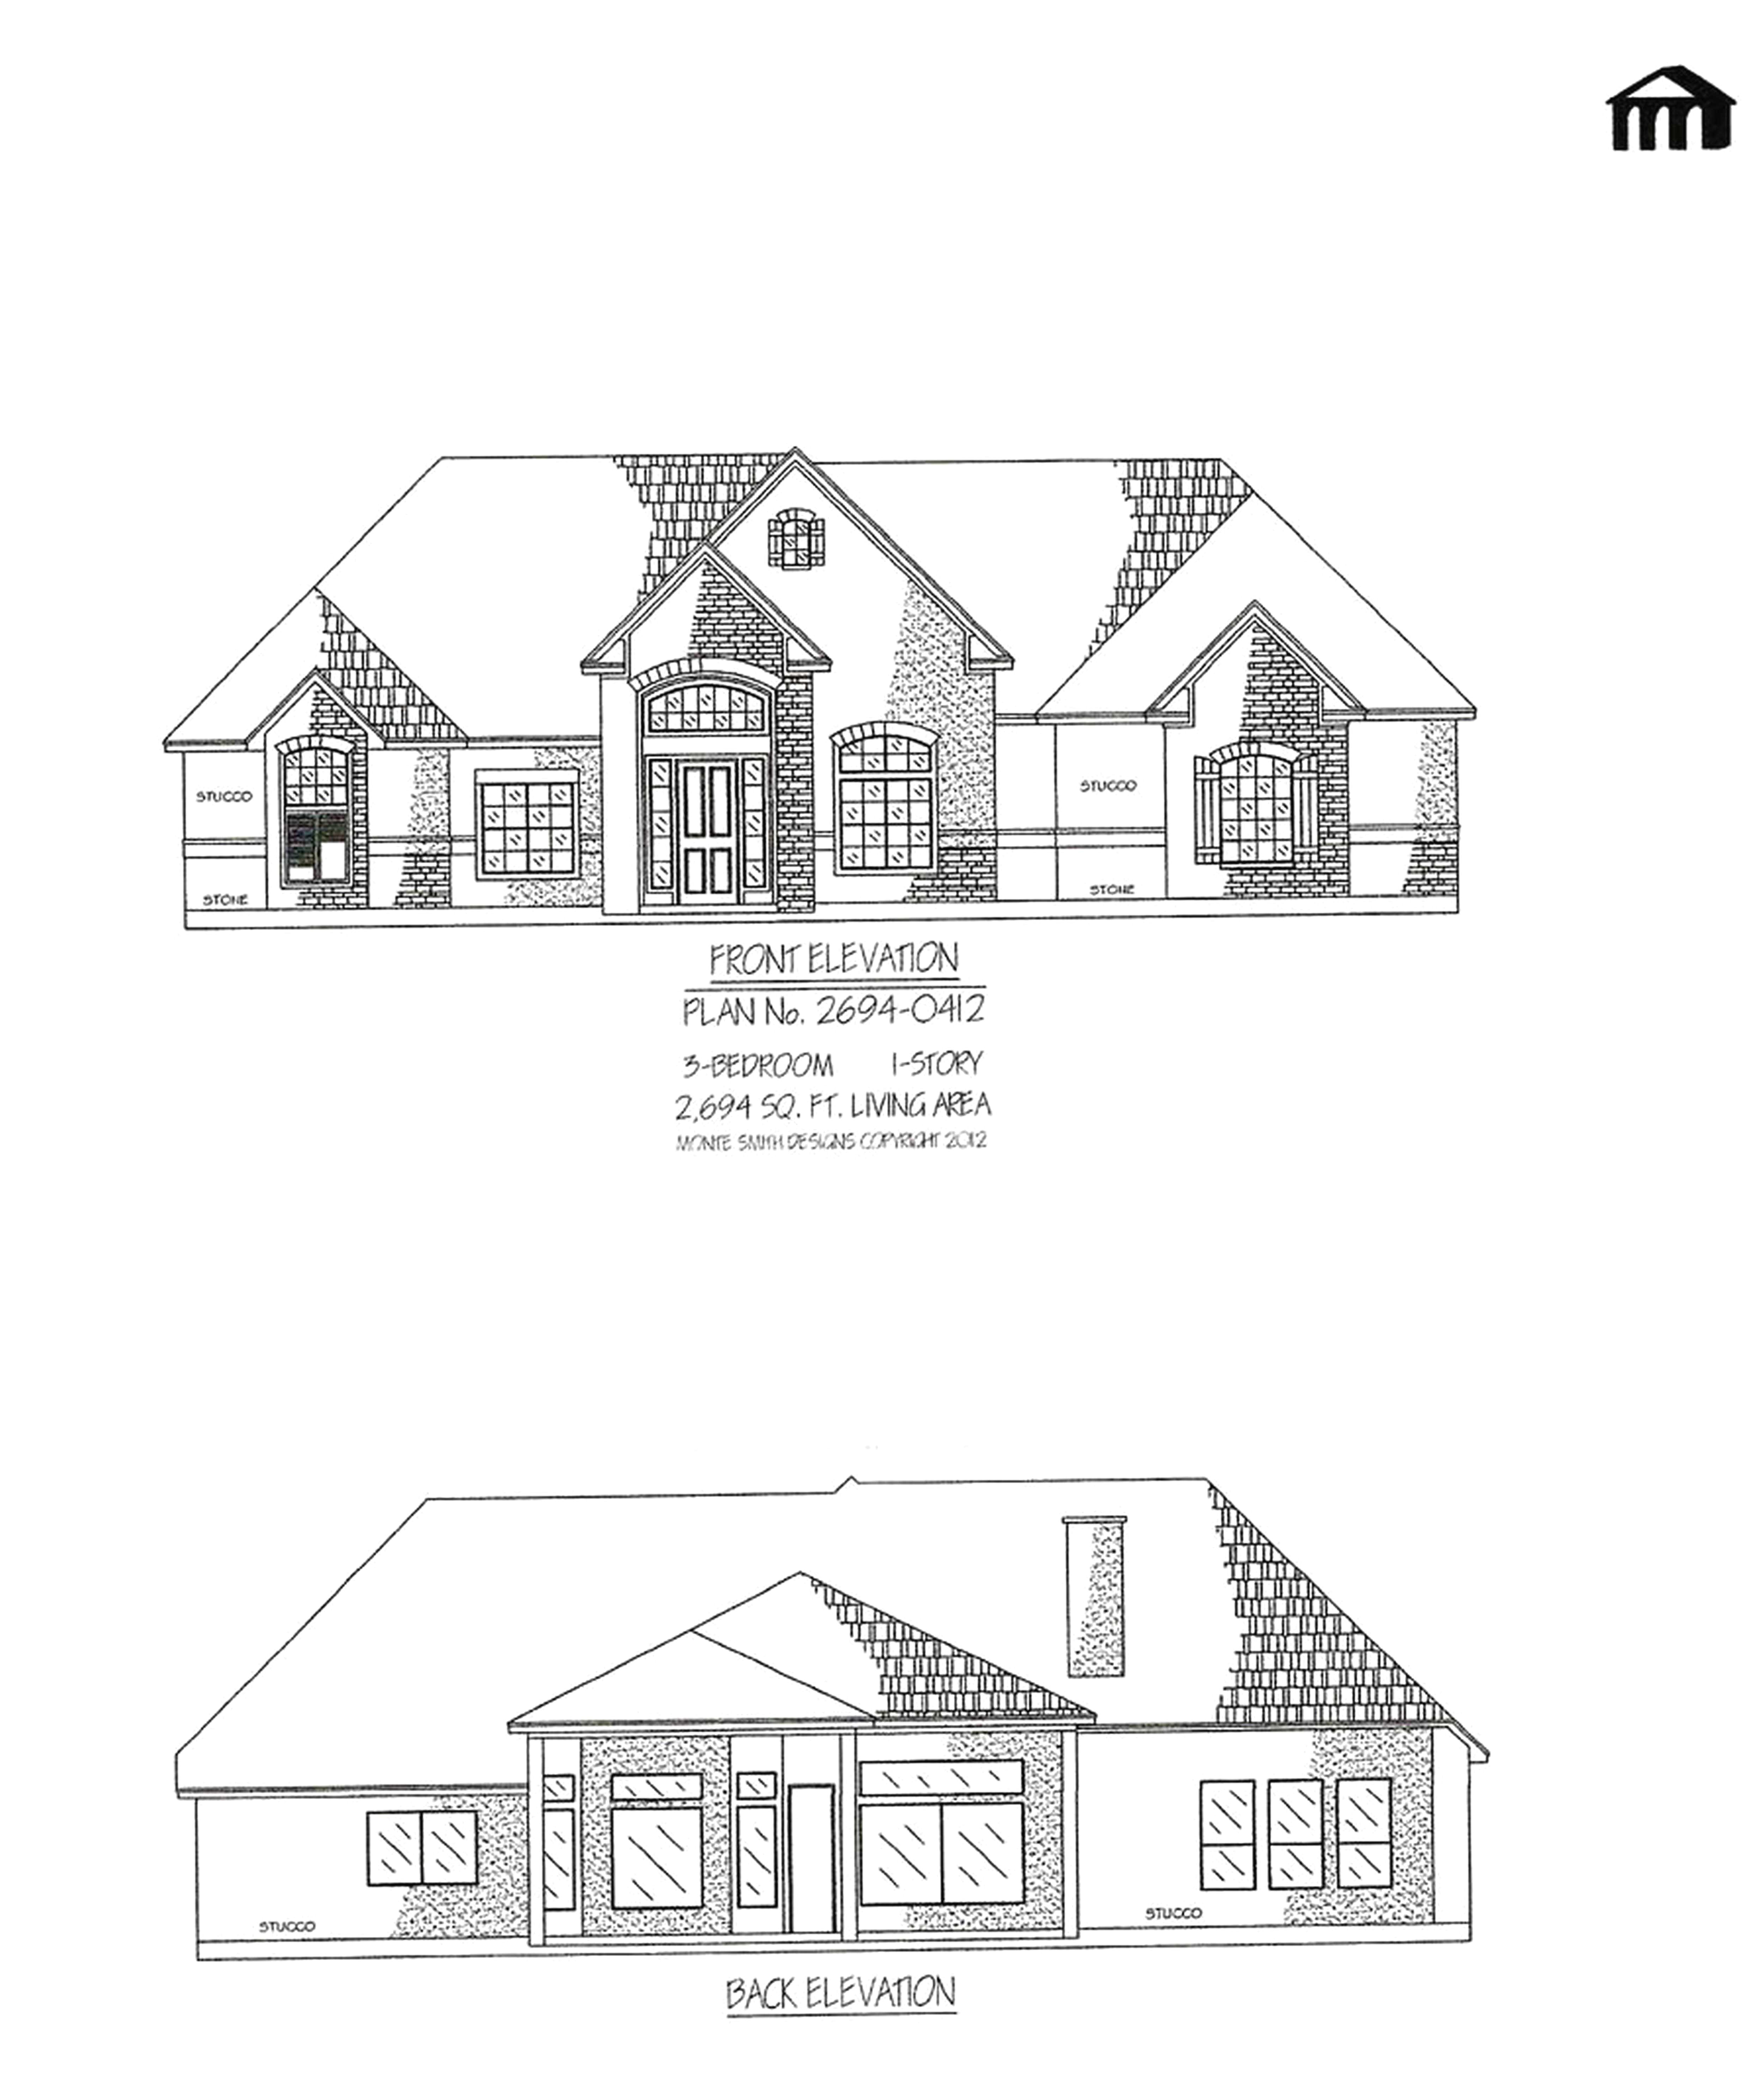 Make Your Own House Plans Online for Free How to Make Your Own House Plans Online